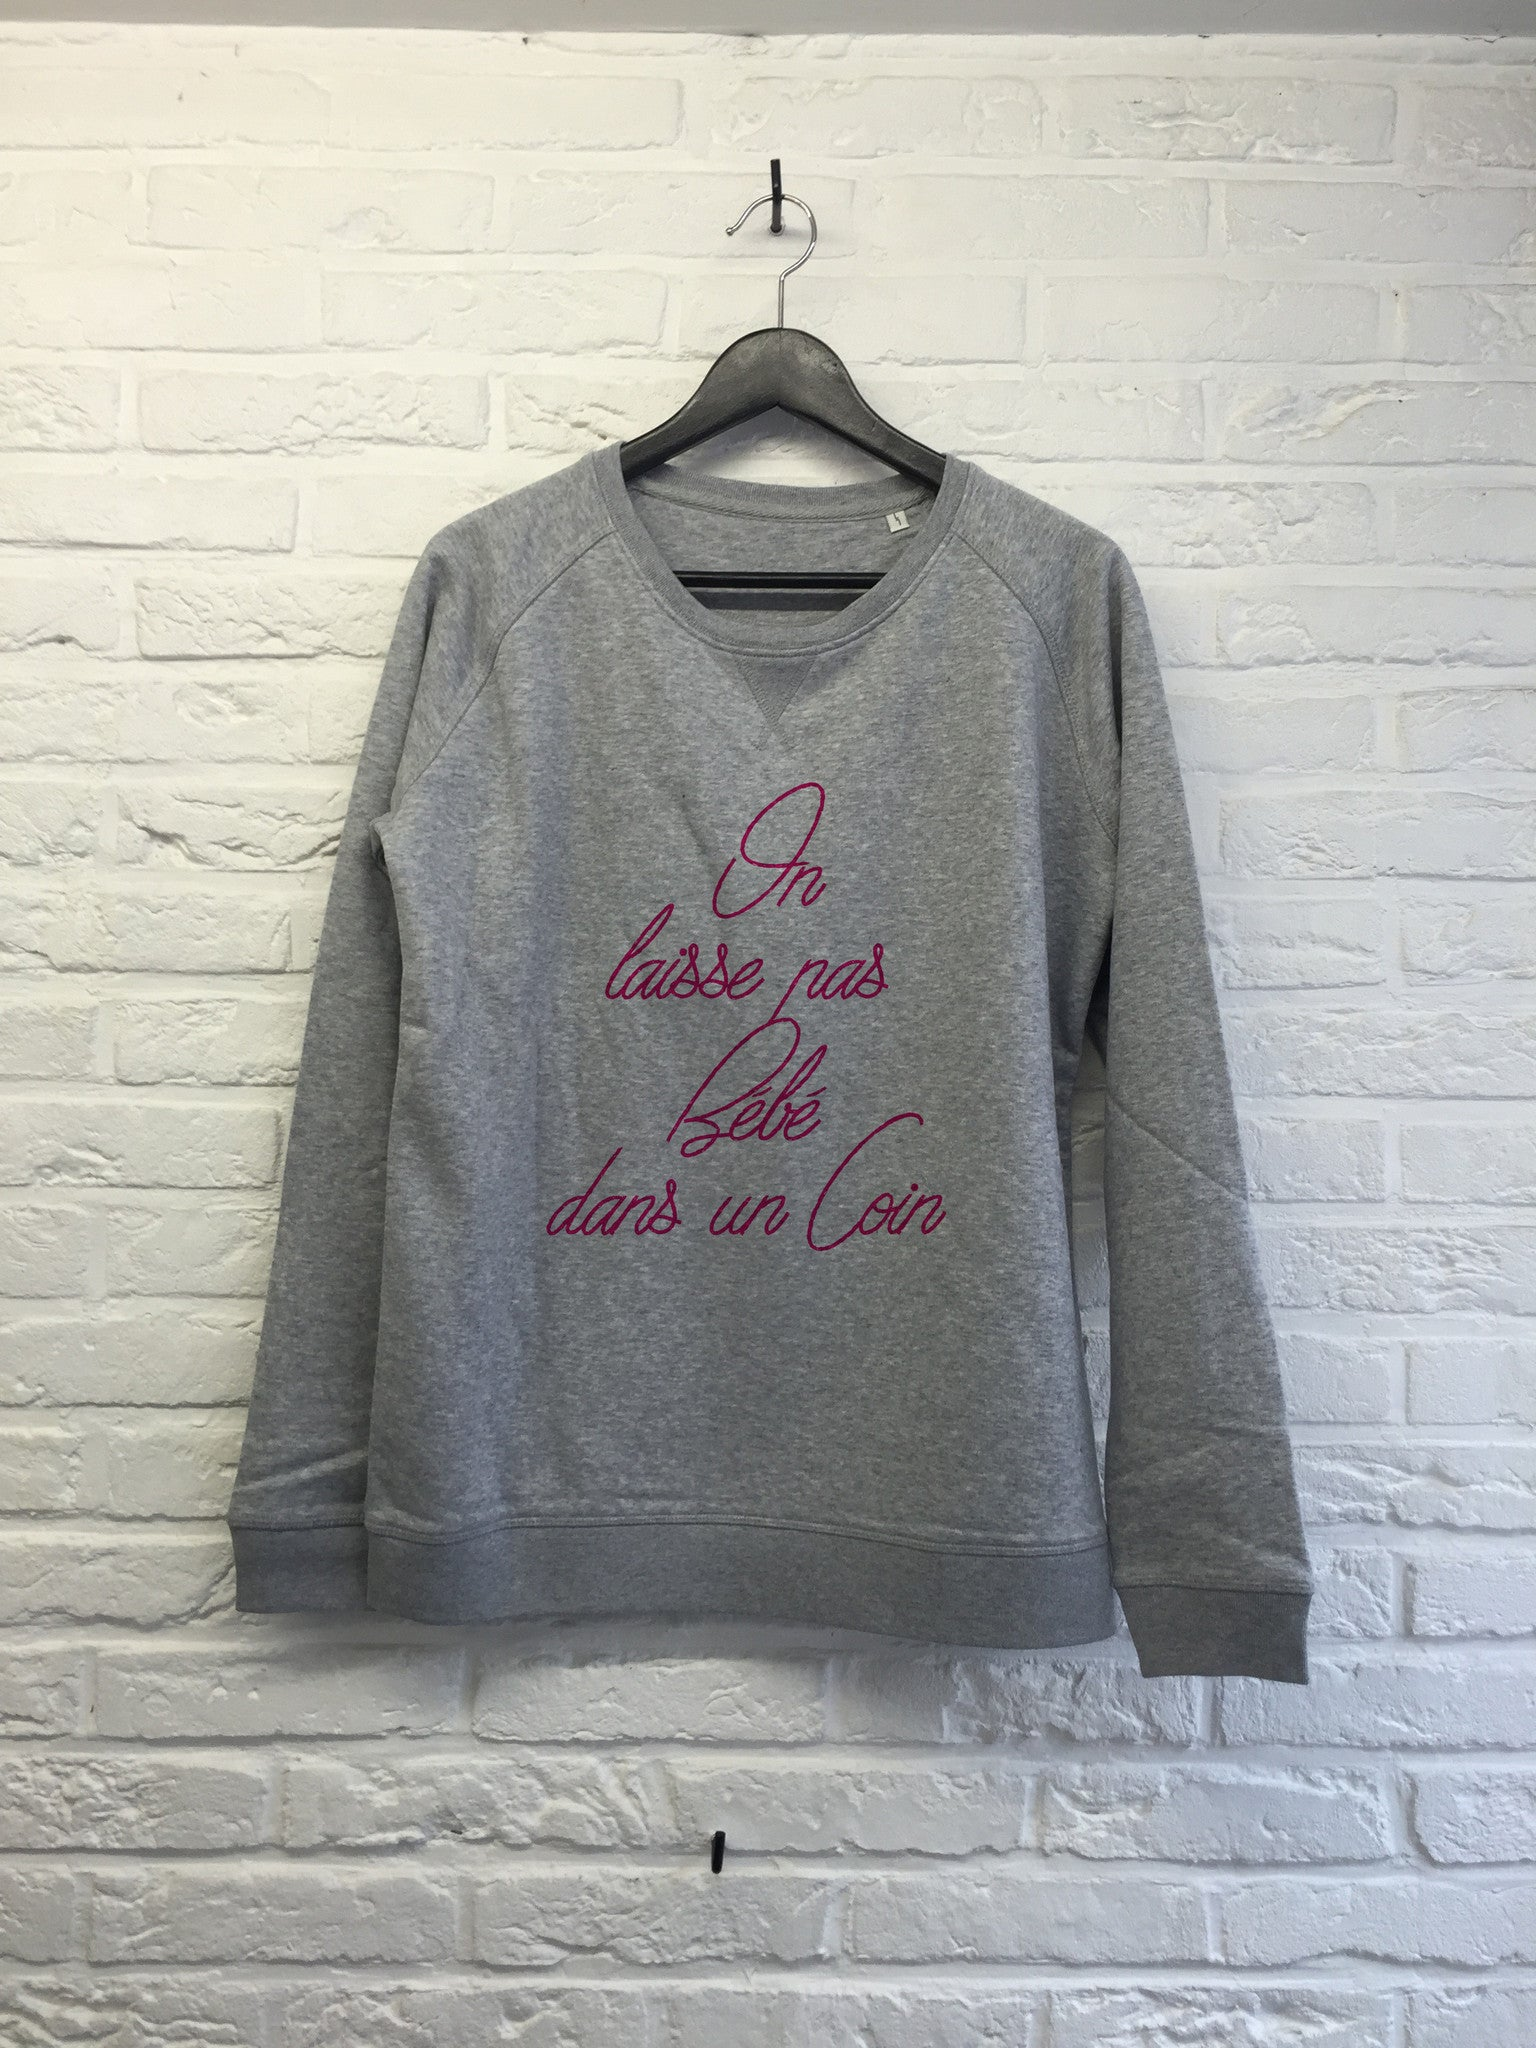 Bebe dans un coin - Sweat - Femme-Sweat shirts-Atelier Amelot